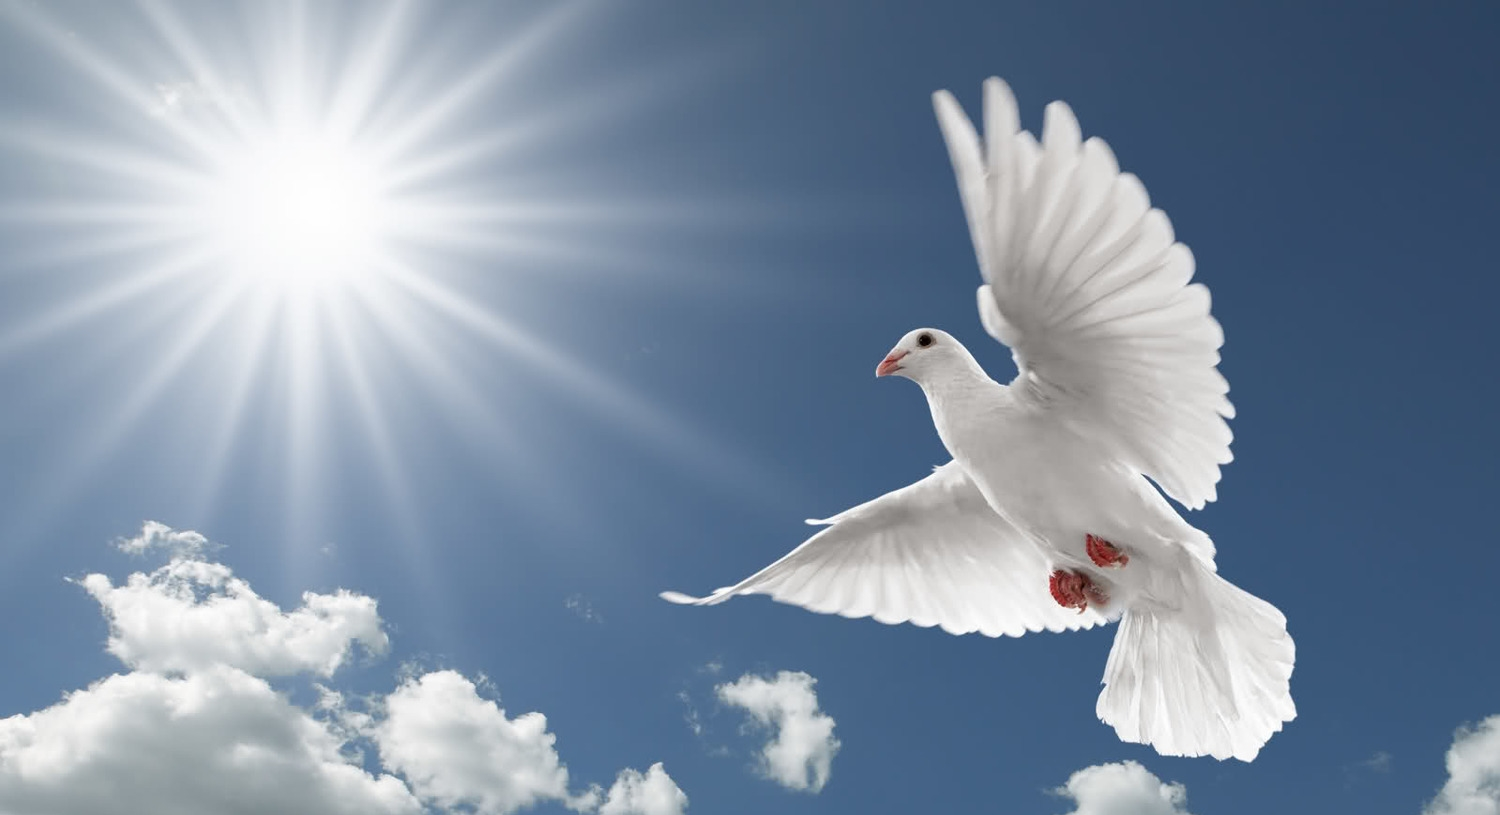 St louis mo white dove release company show me doves pigeon beautiful best hd wallpaperg voltagebd Gallery